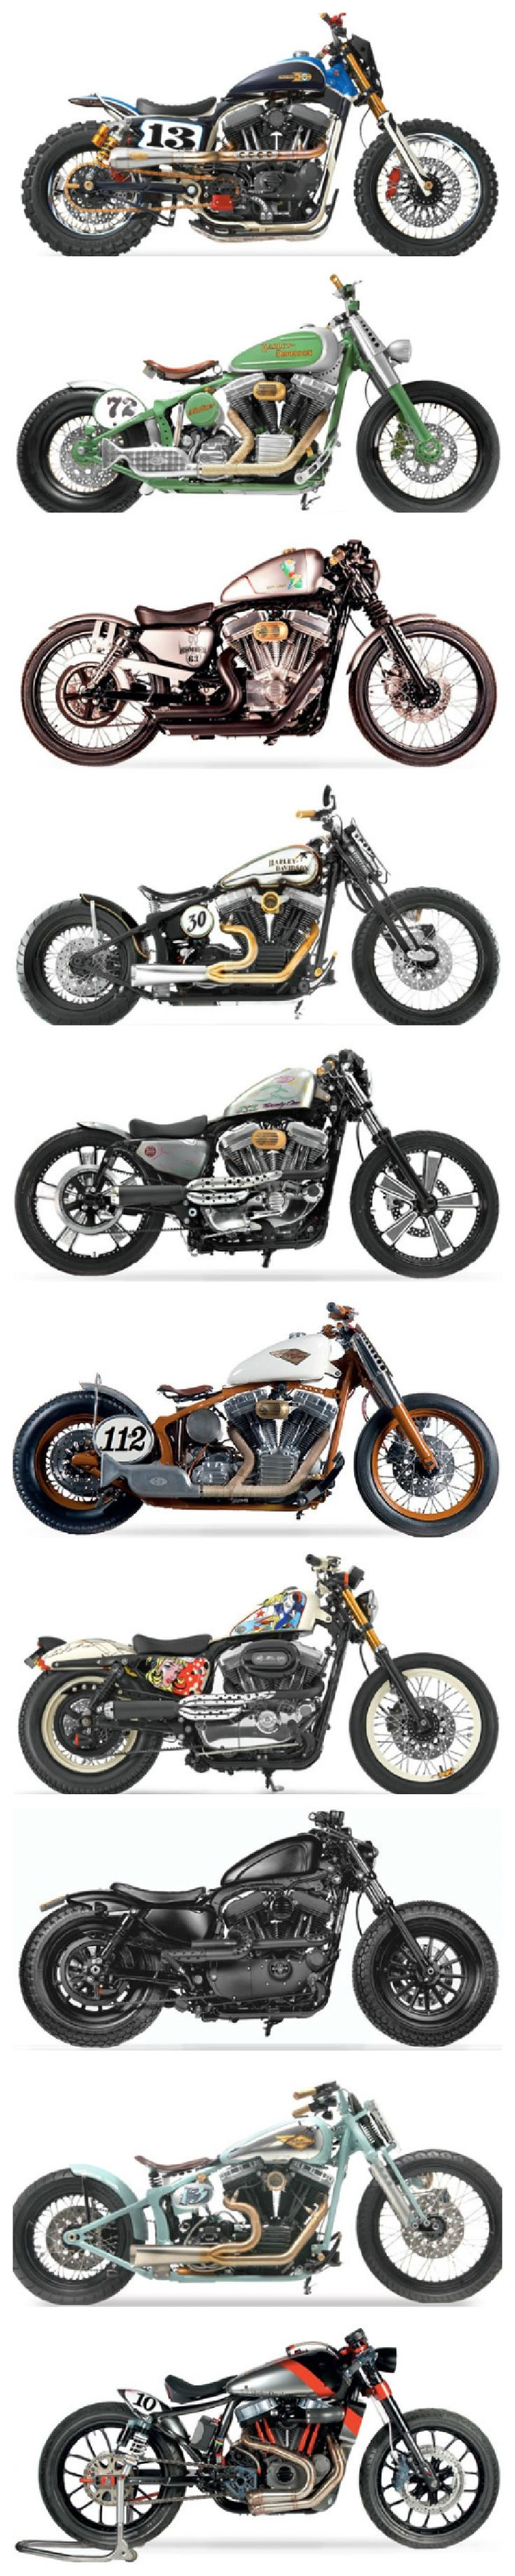 Road Legal Custom Harleys From Europe ...Brought to you by House of Insurance in #EugeneOregon call for a free price comparison 541-345-4191.